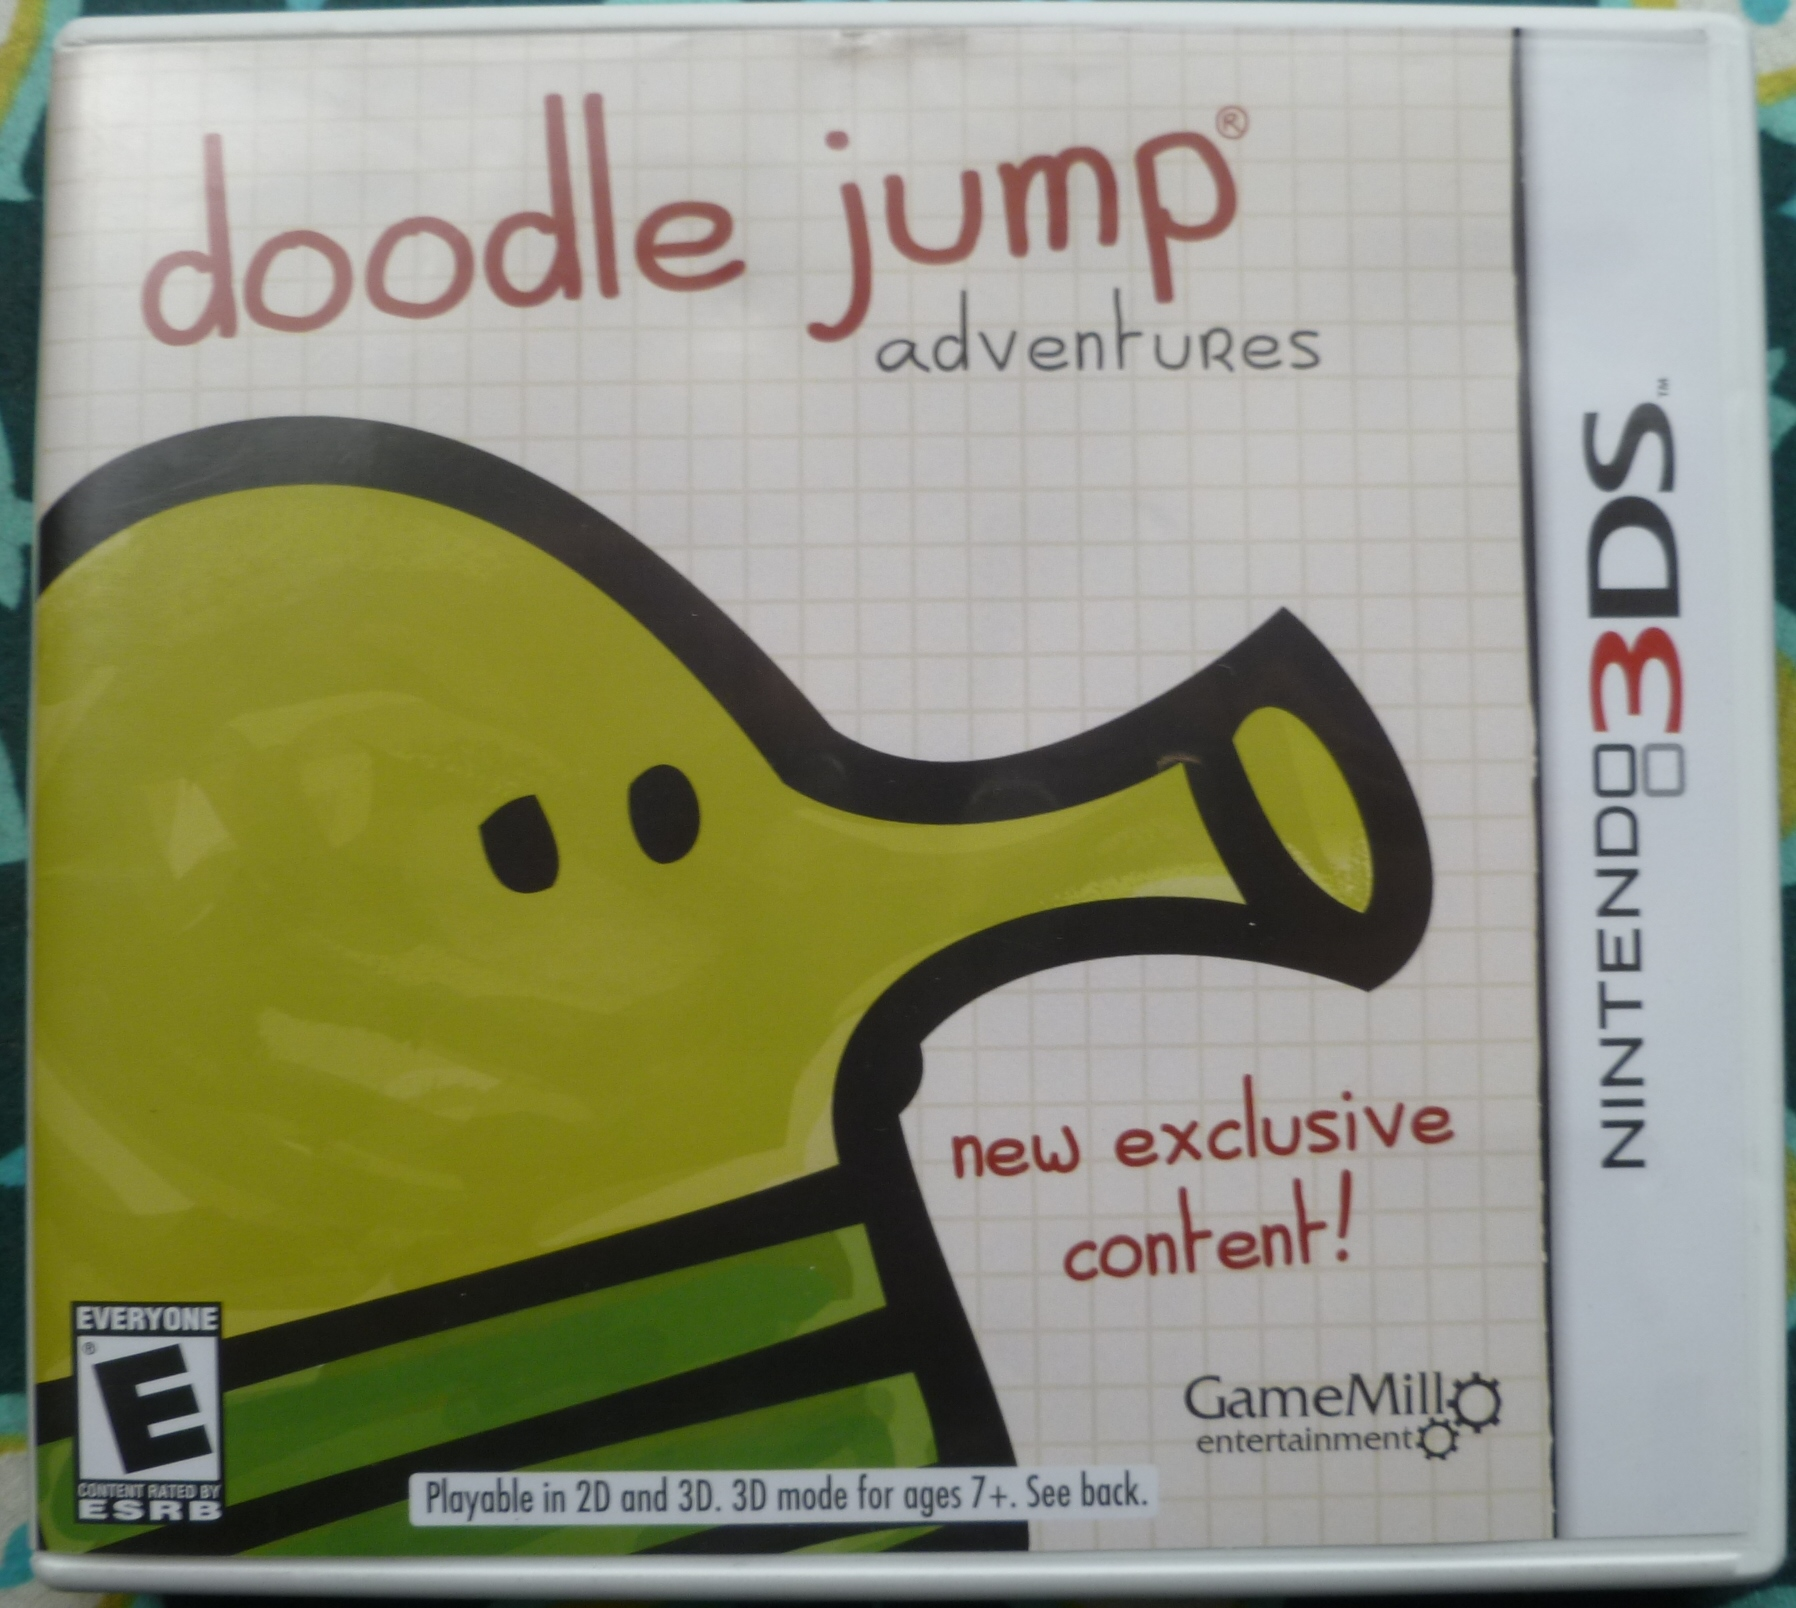 Doodle Jump Adventures Cover